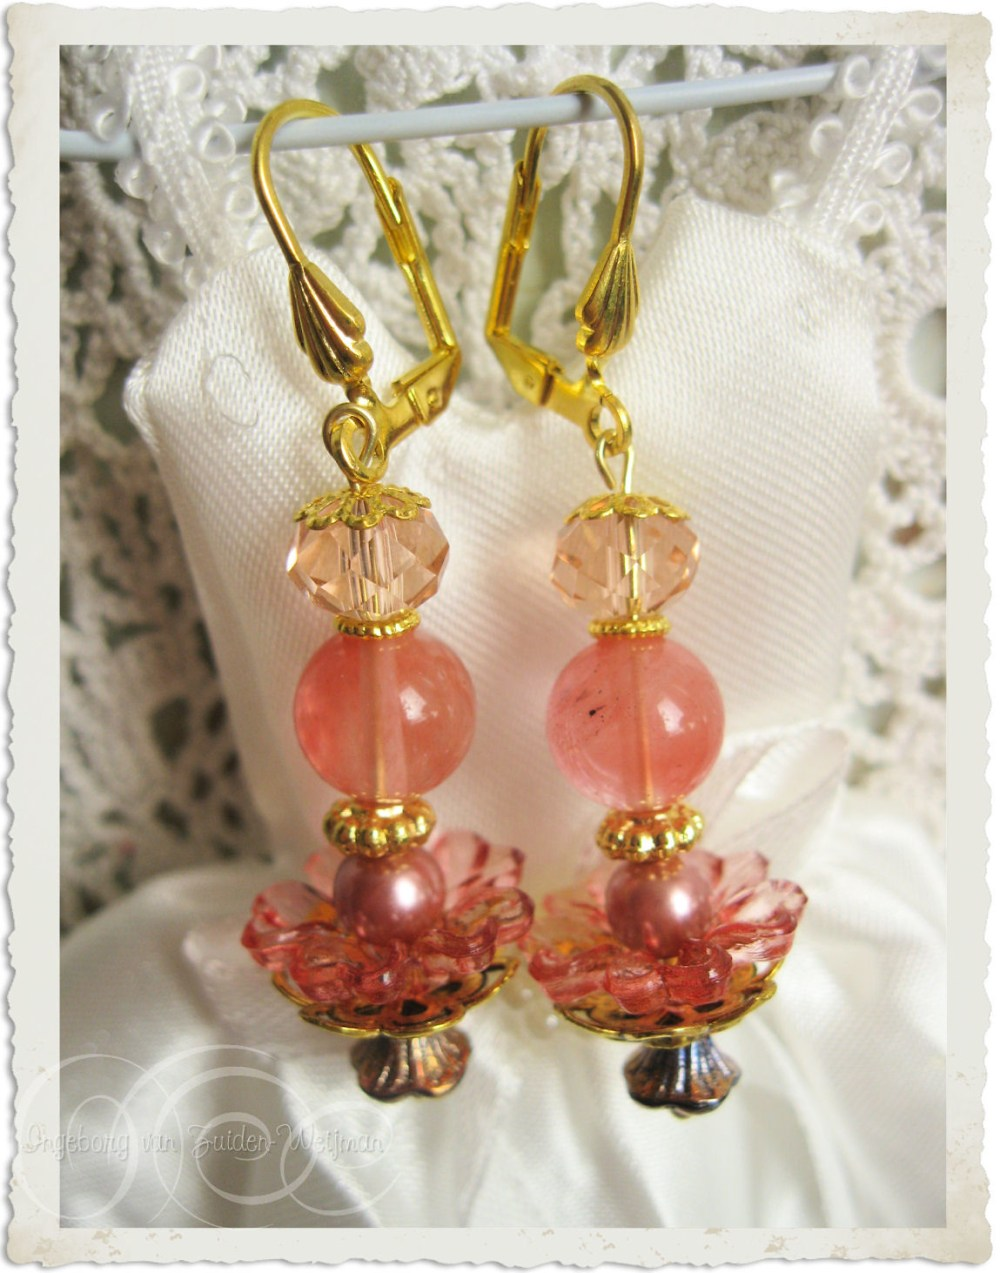 Handmade earrings with cherry quartz by Ingeborg